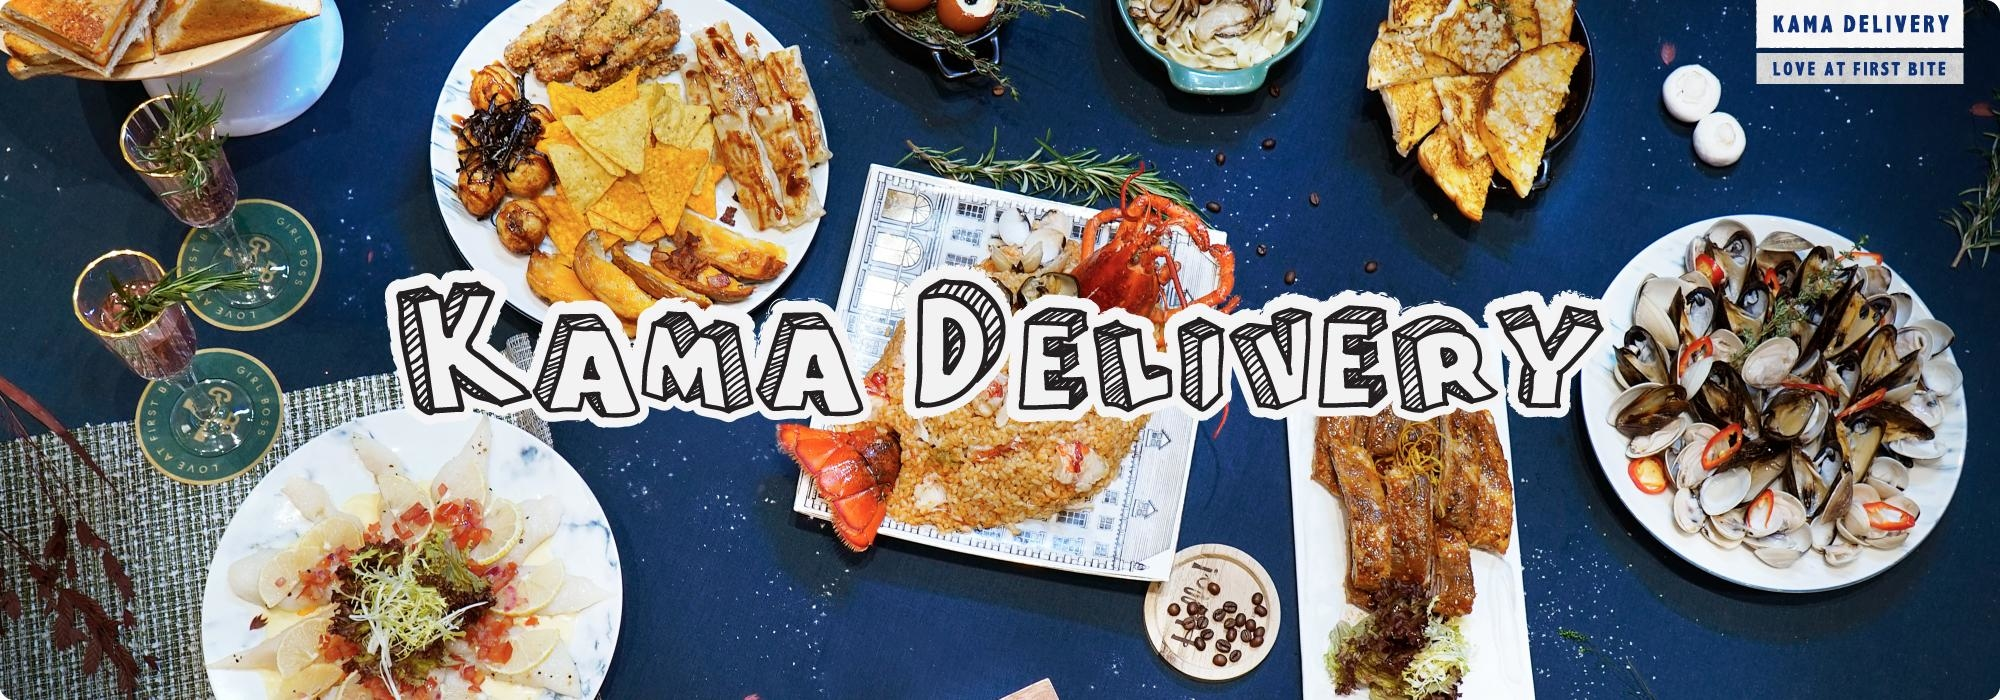 Kama Delivery Catering Services in Hong Kong